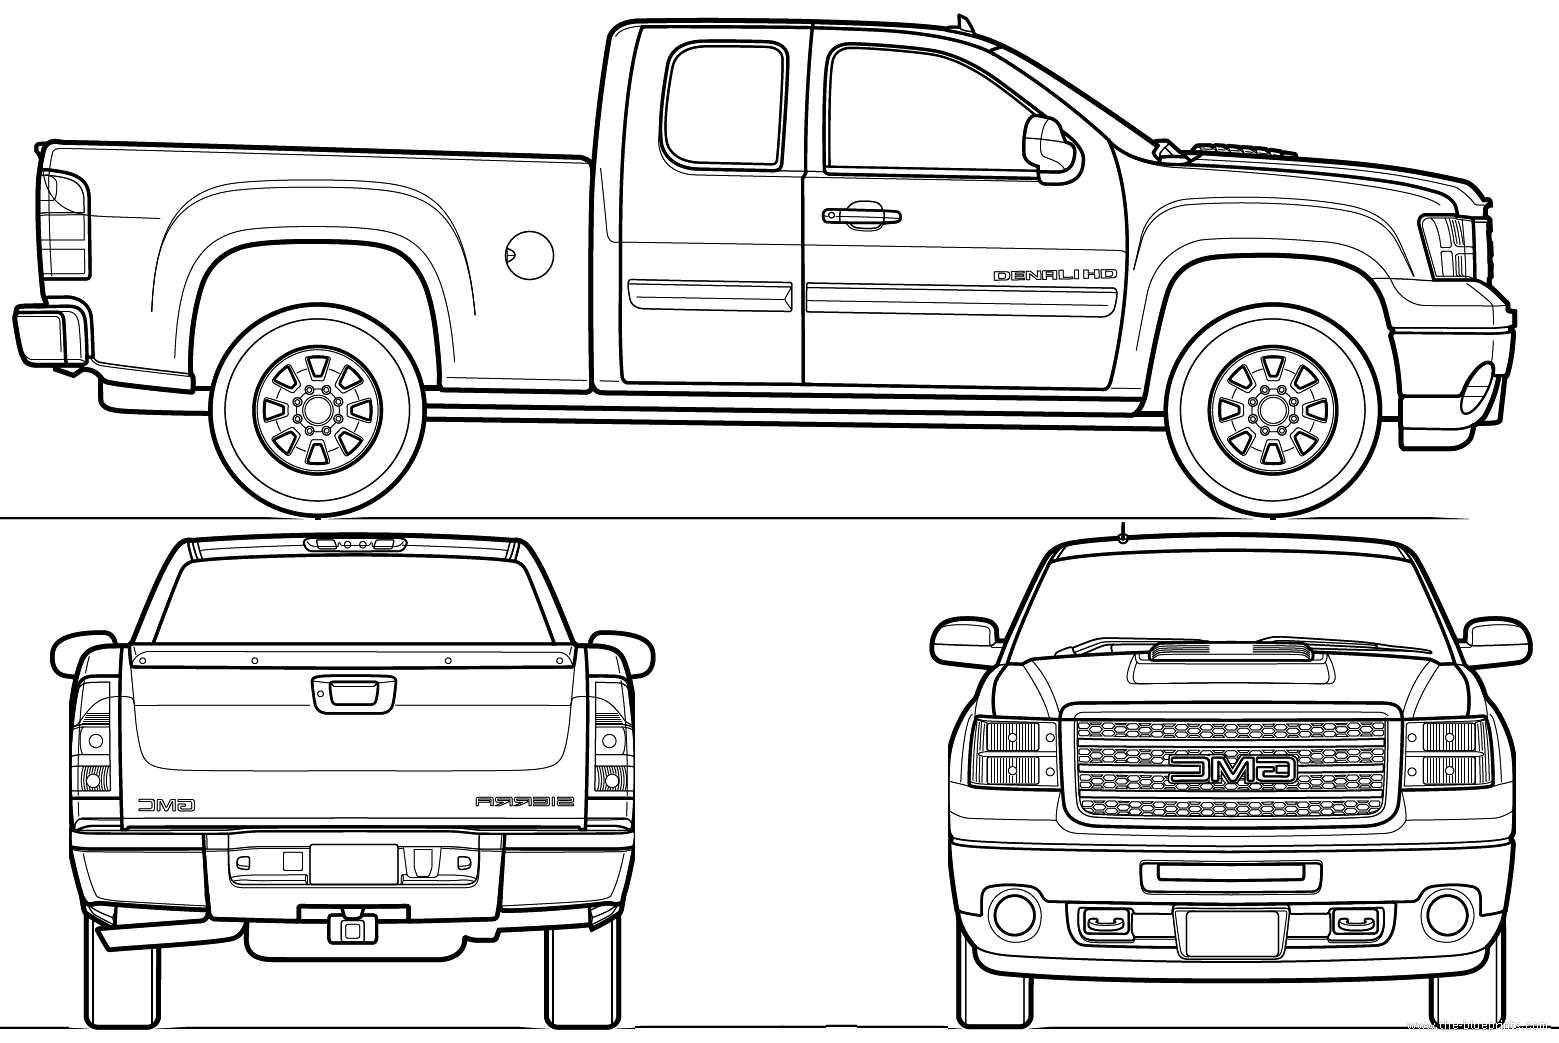 Chevrolet silverado extended cab 8 Feet box together with Ford Bronco Vector File besides Most Loved Car Blueprints For 3d Modeling furthermore P 0900c15280061ea0 further . on gmc sierra blueprint